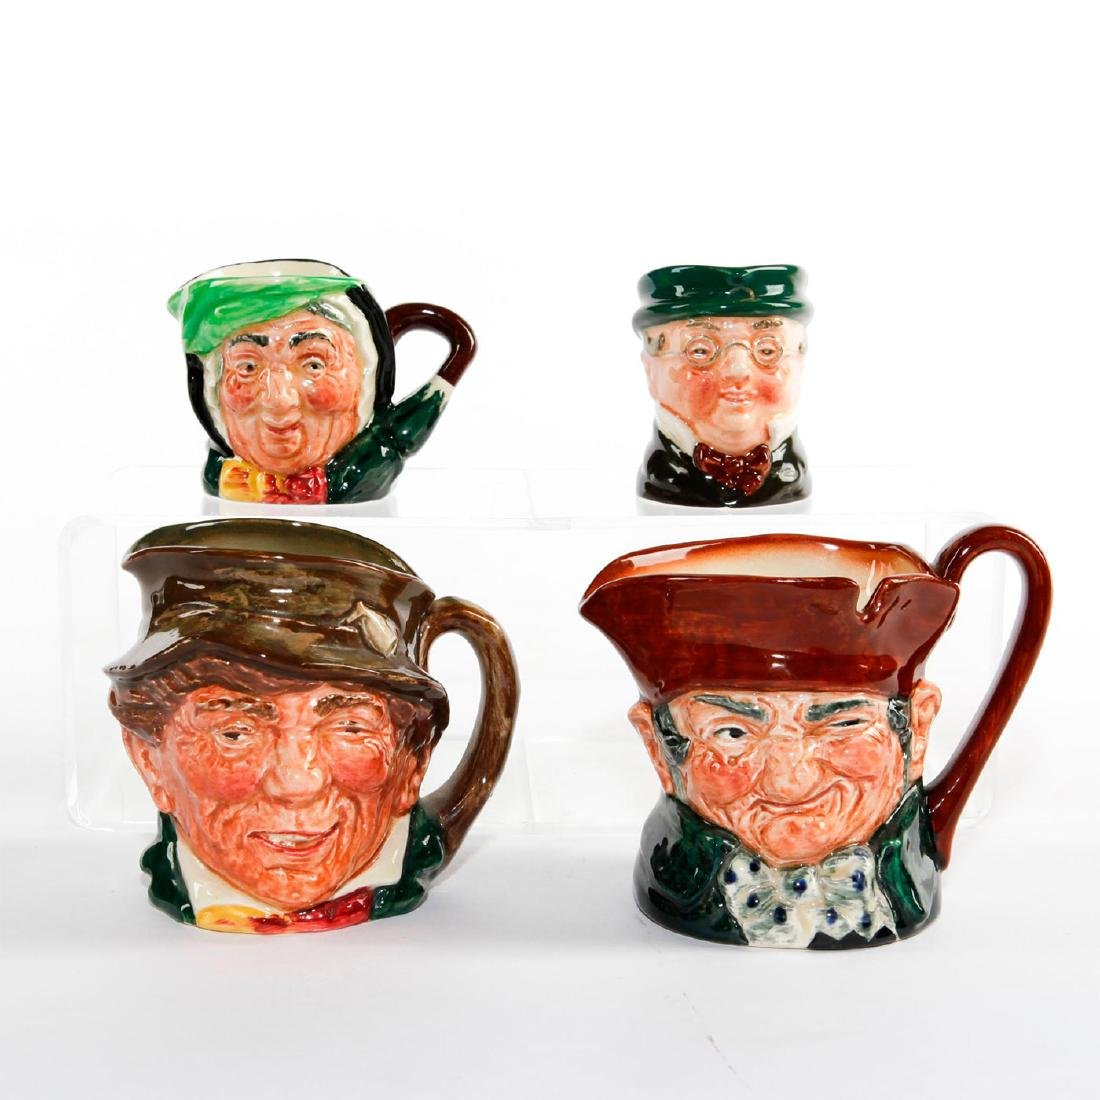 GROUP OF FOUR ROYAL DOULTON CHARACTER JUGS